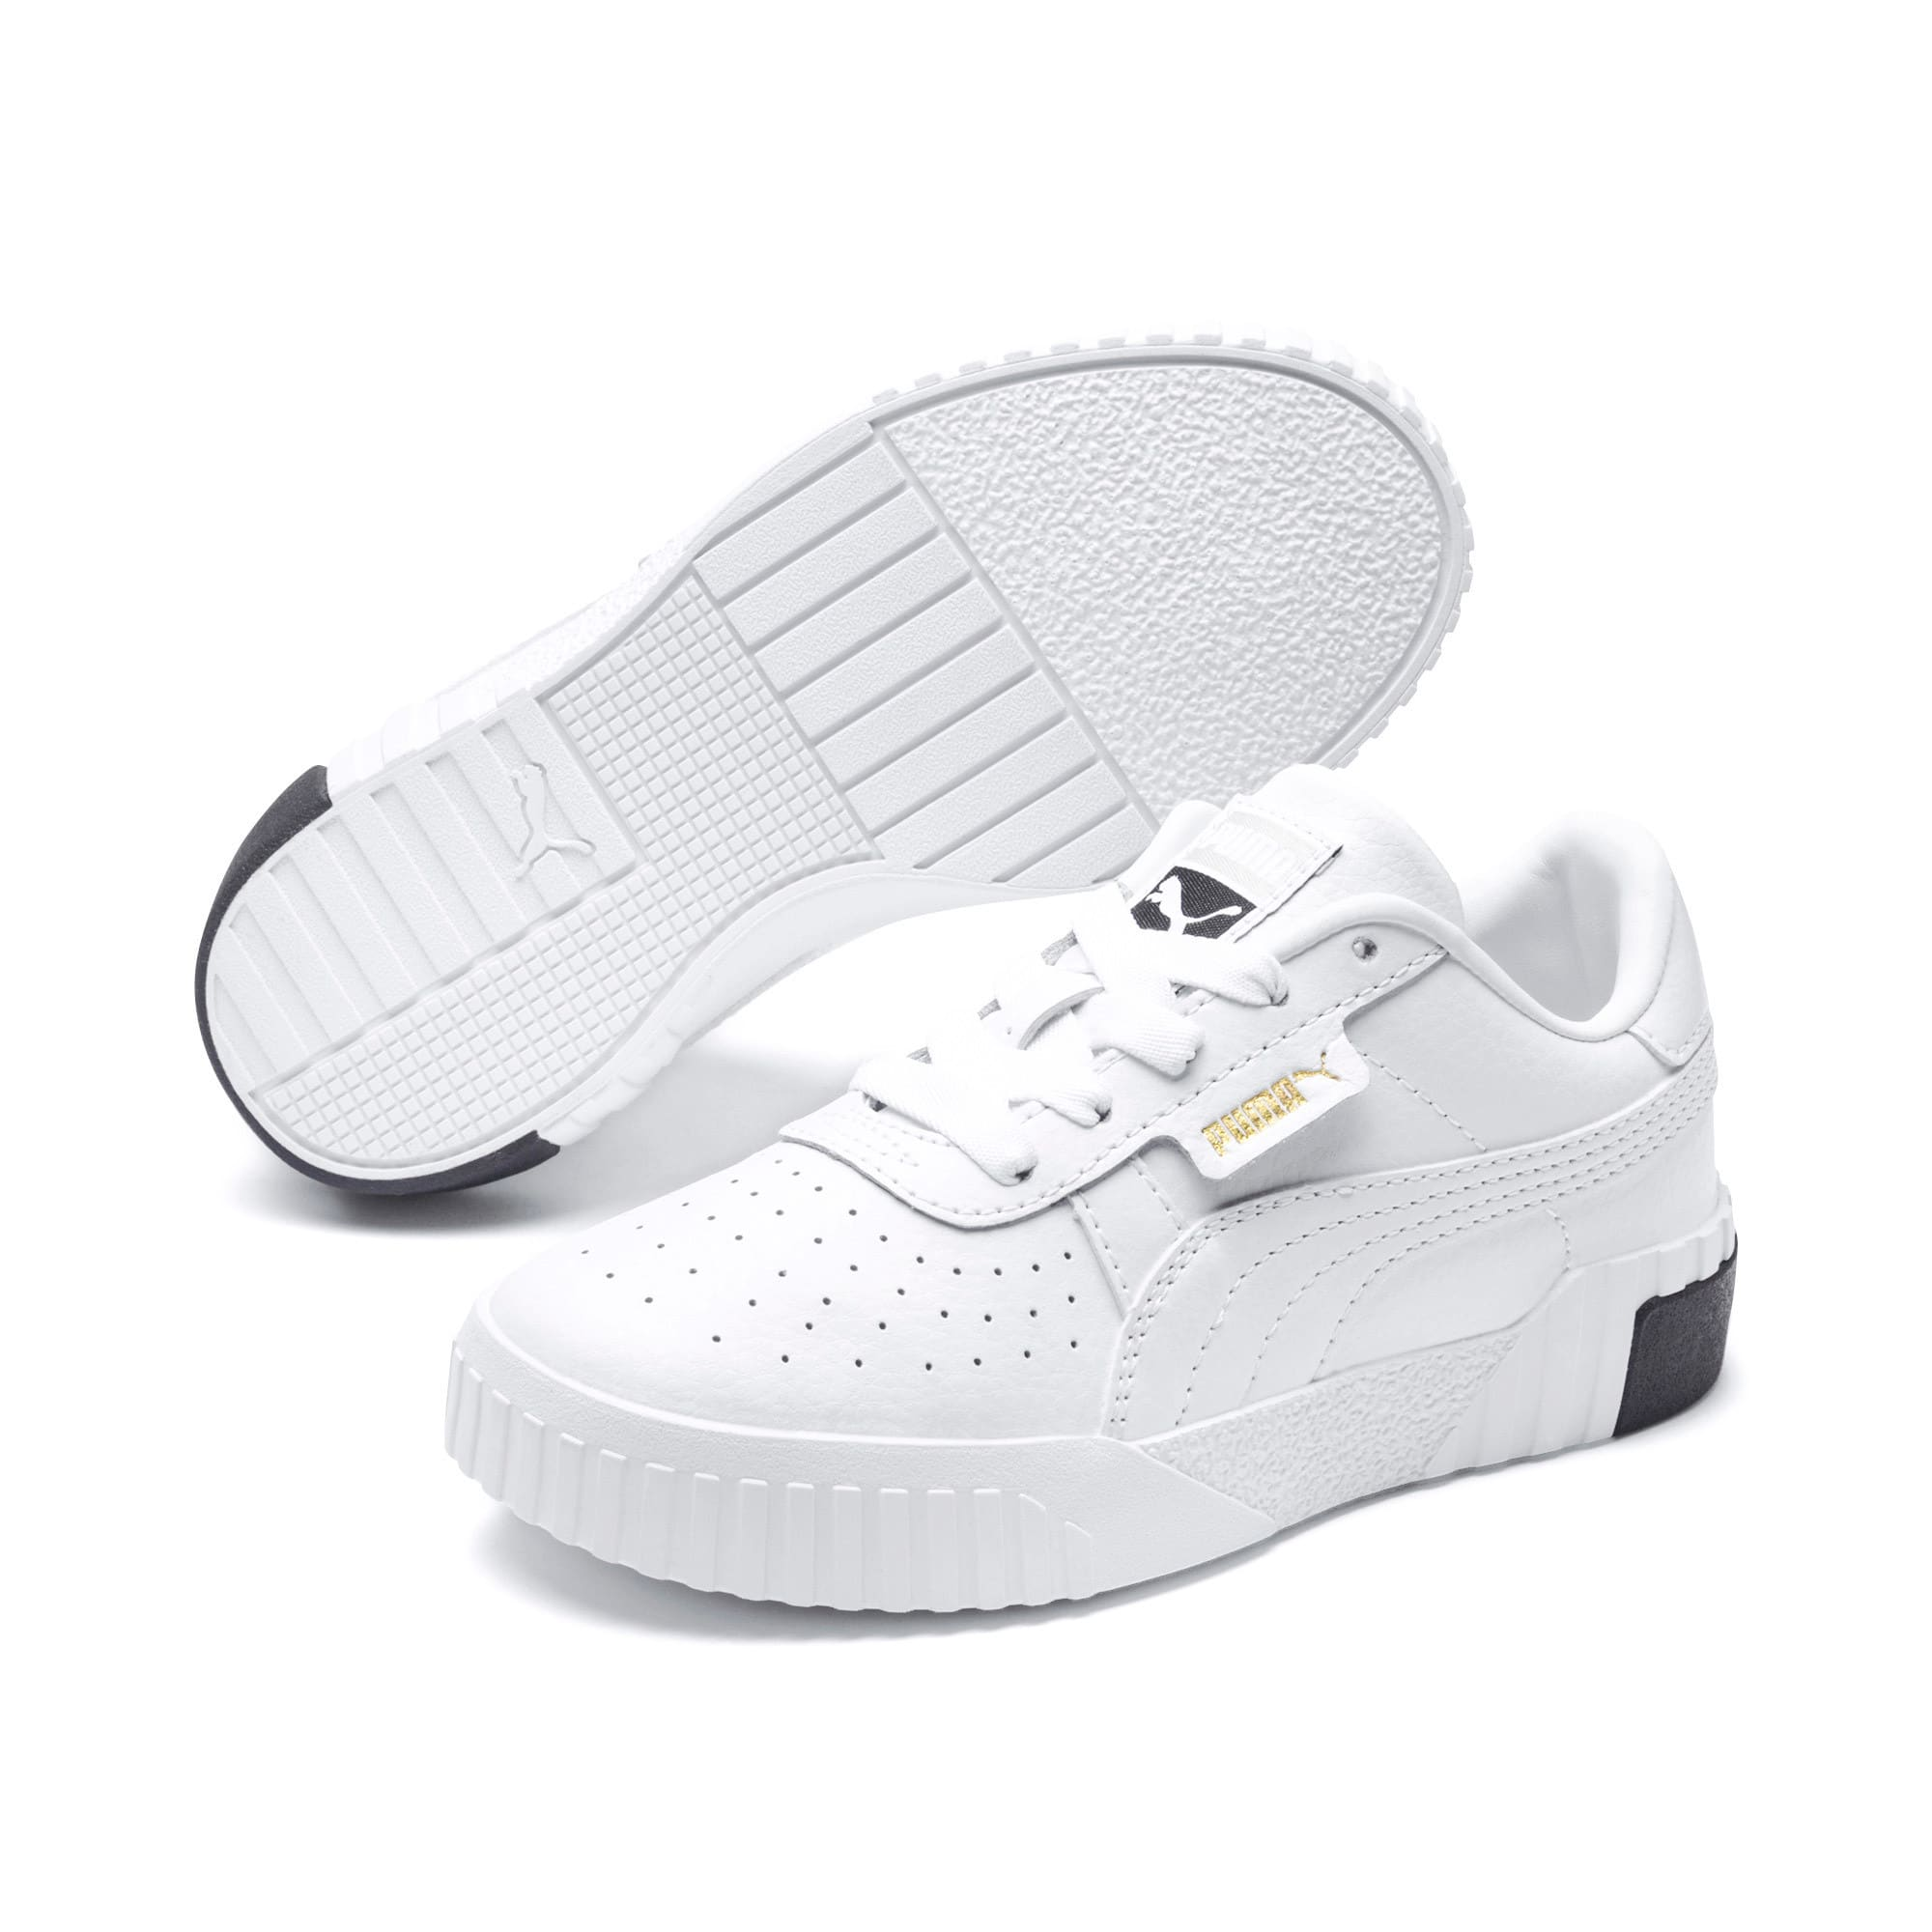 Thumbnail 2 of Cali Little Kids' Shoes, Puma White-Puma Black, medium